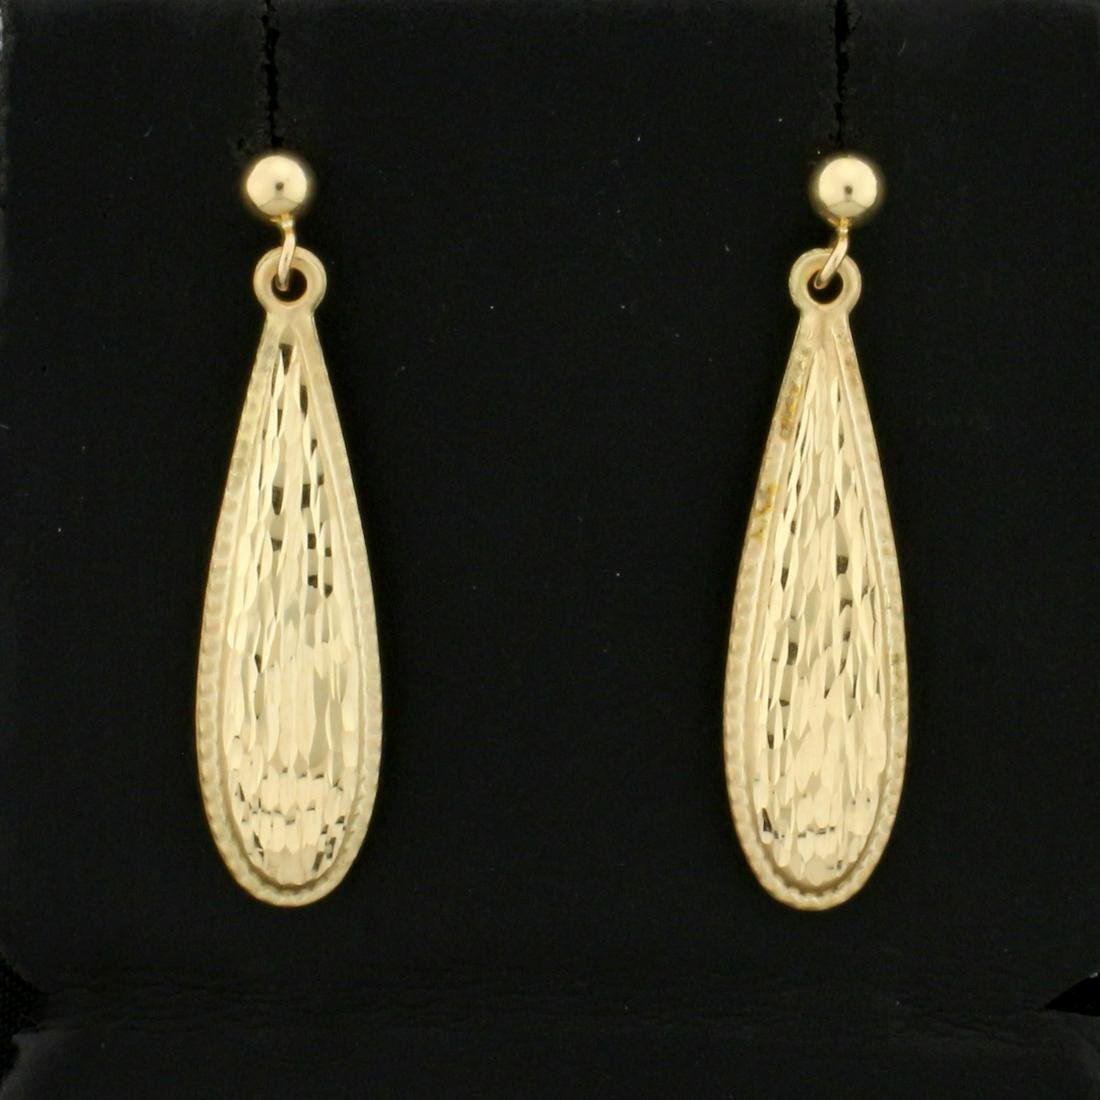 Diamond Cut Dangle Earrings in 14K Yellow Gold